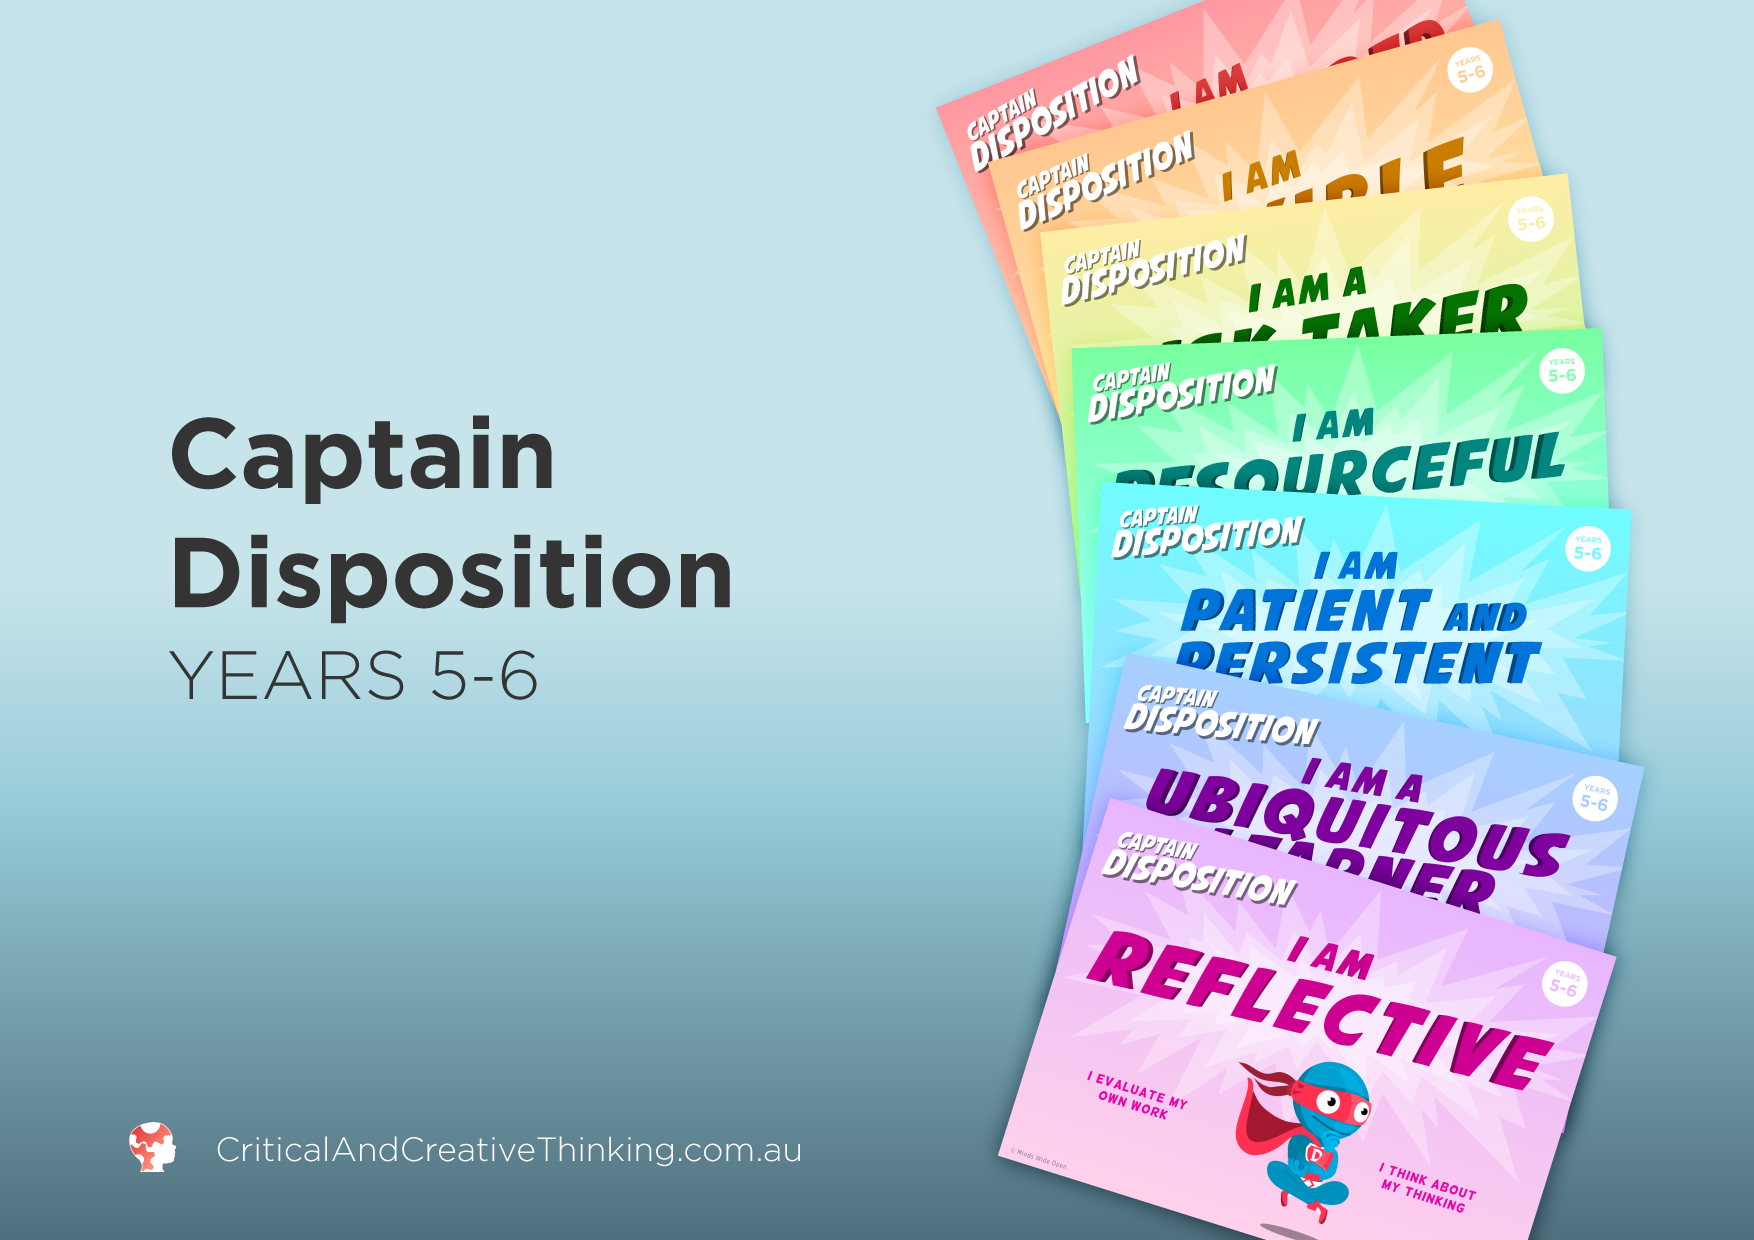 Captain Disposition Year 5 - 6